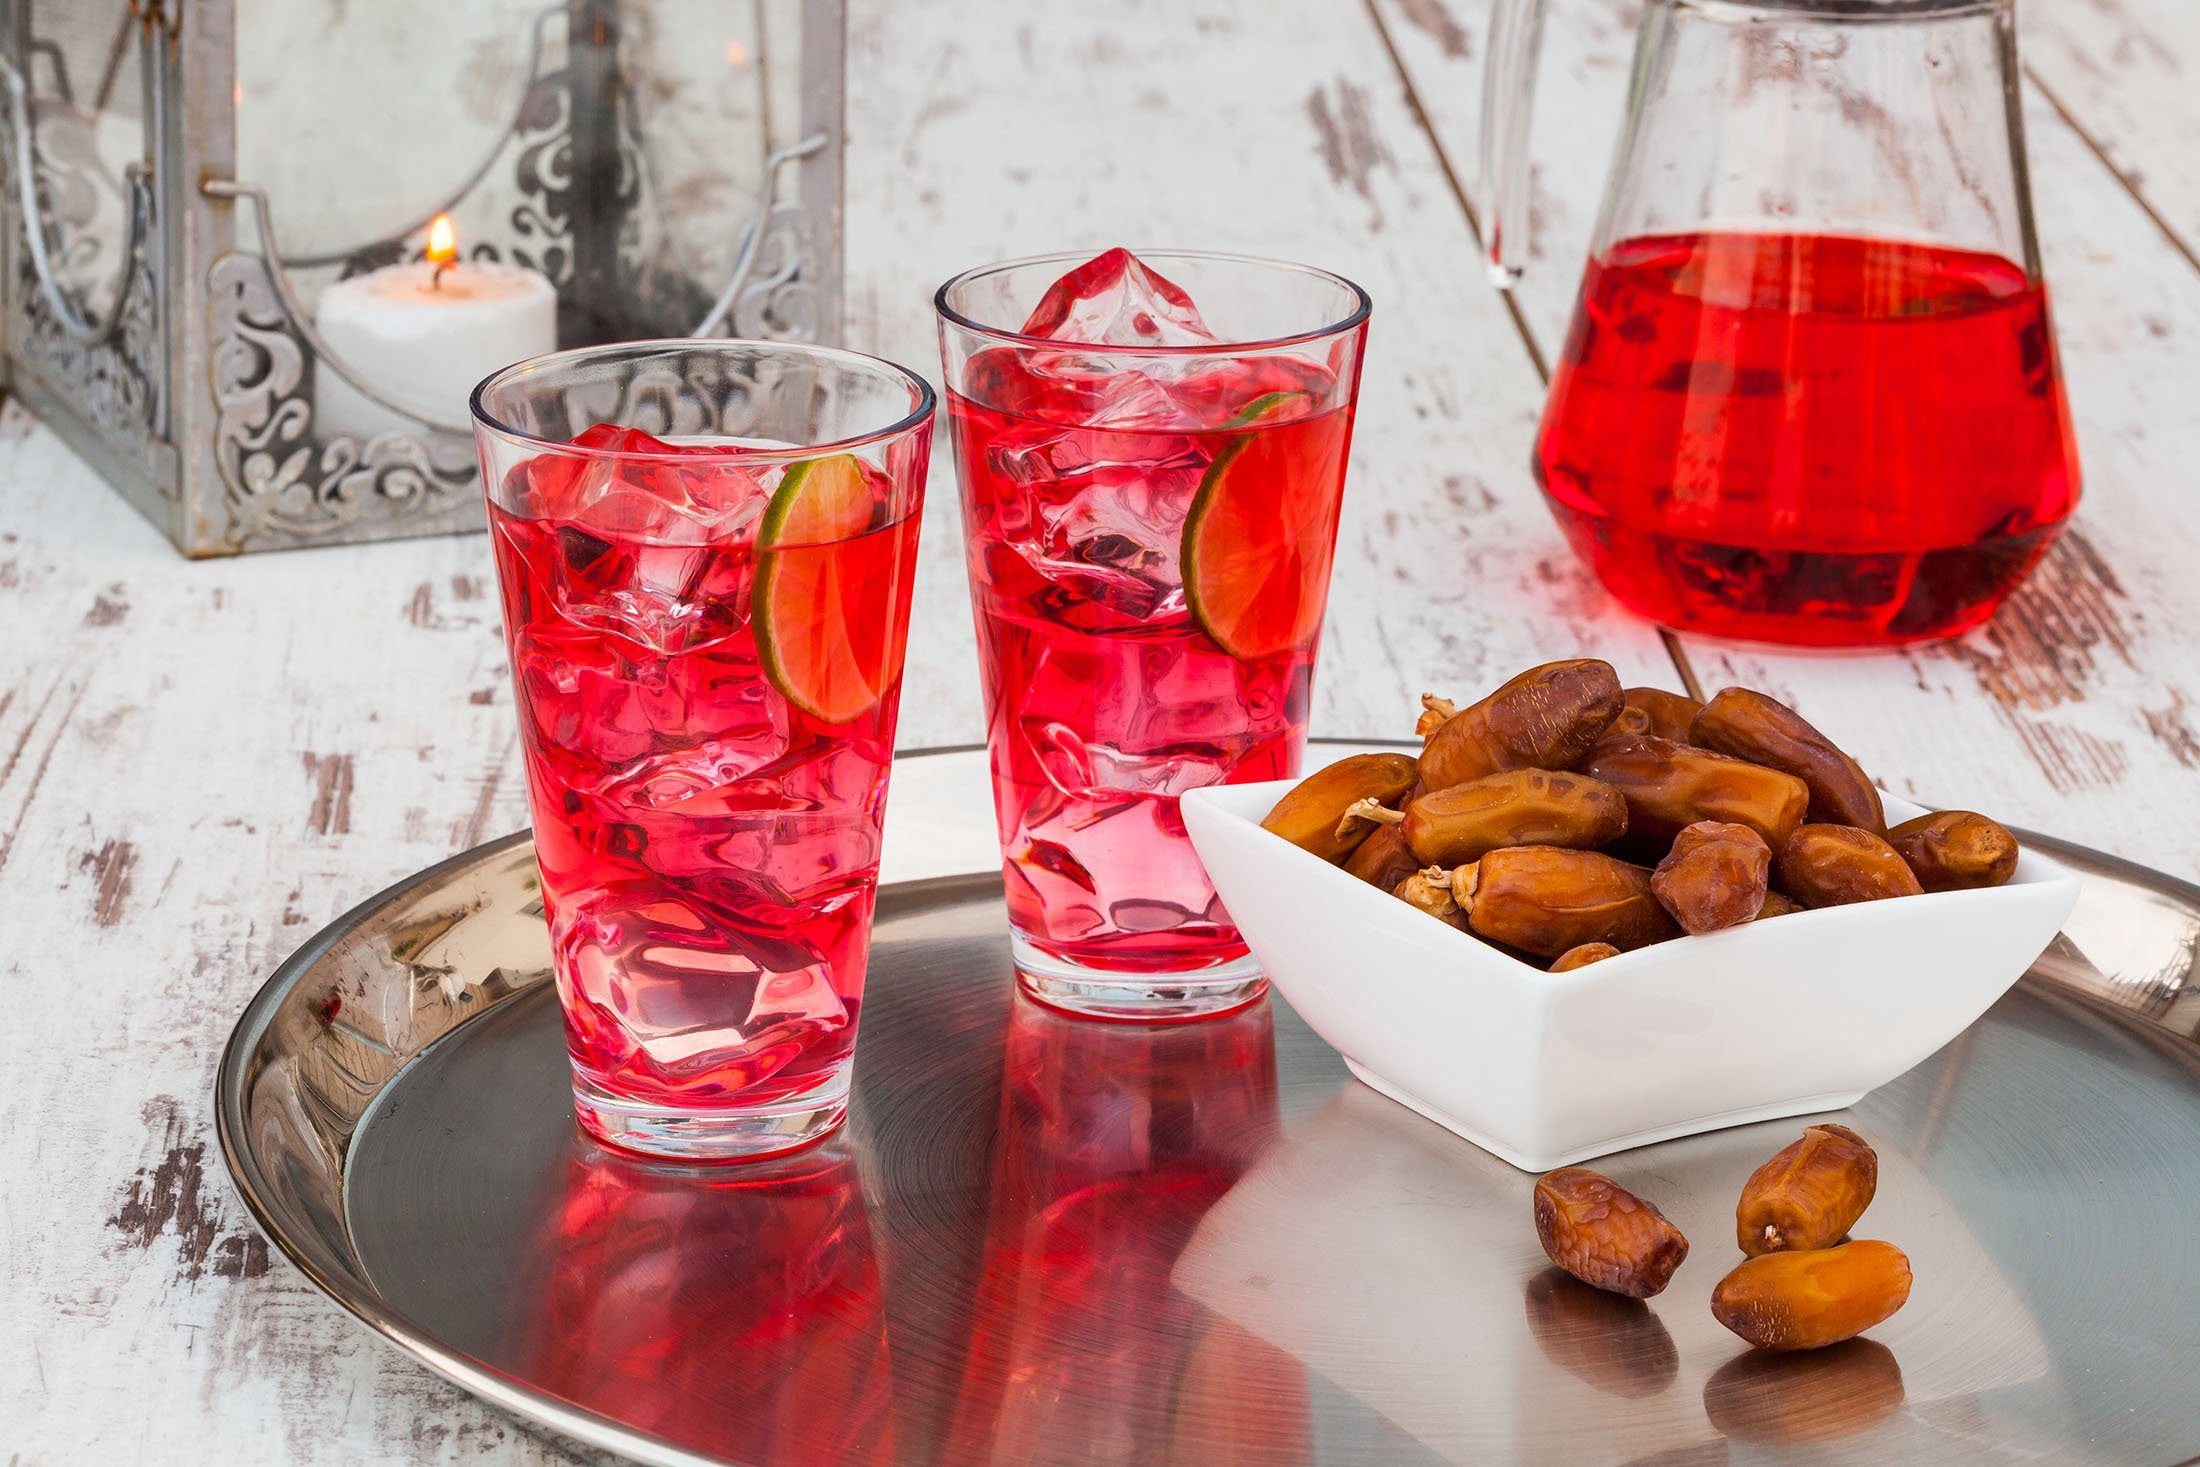 For a cold refreshing drink, try Rooh Afza. (Shutterstock Photo)